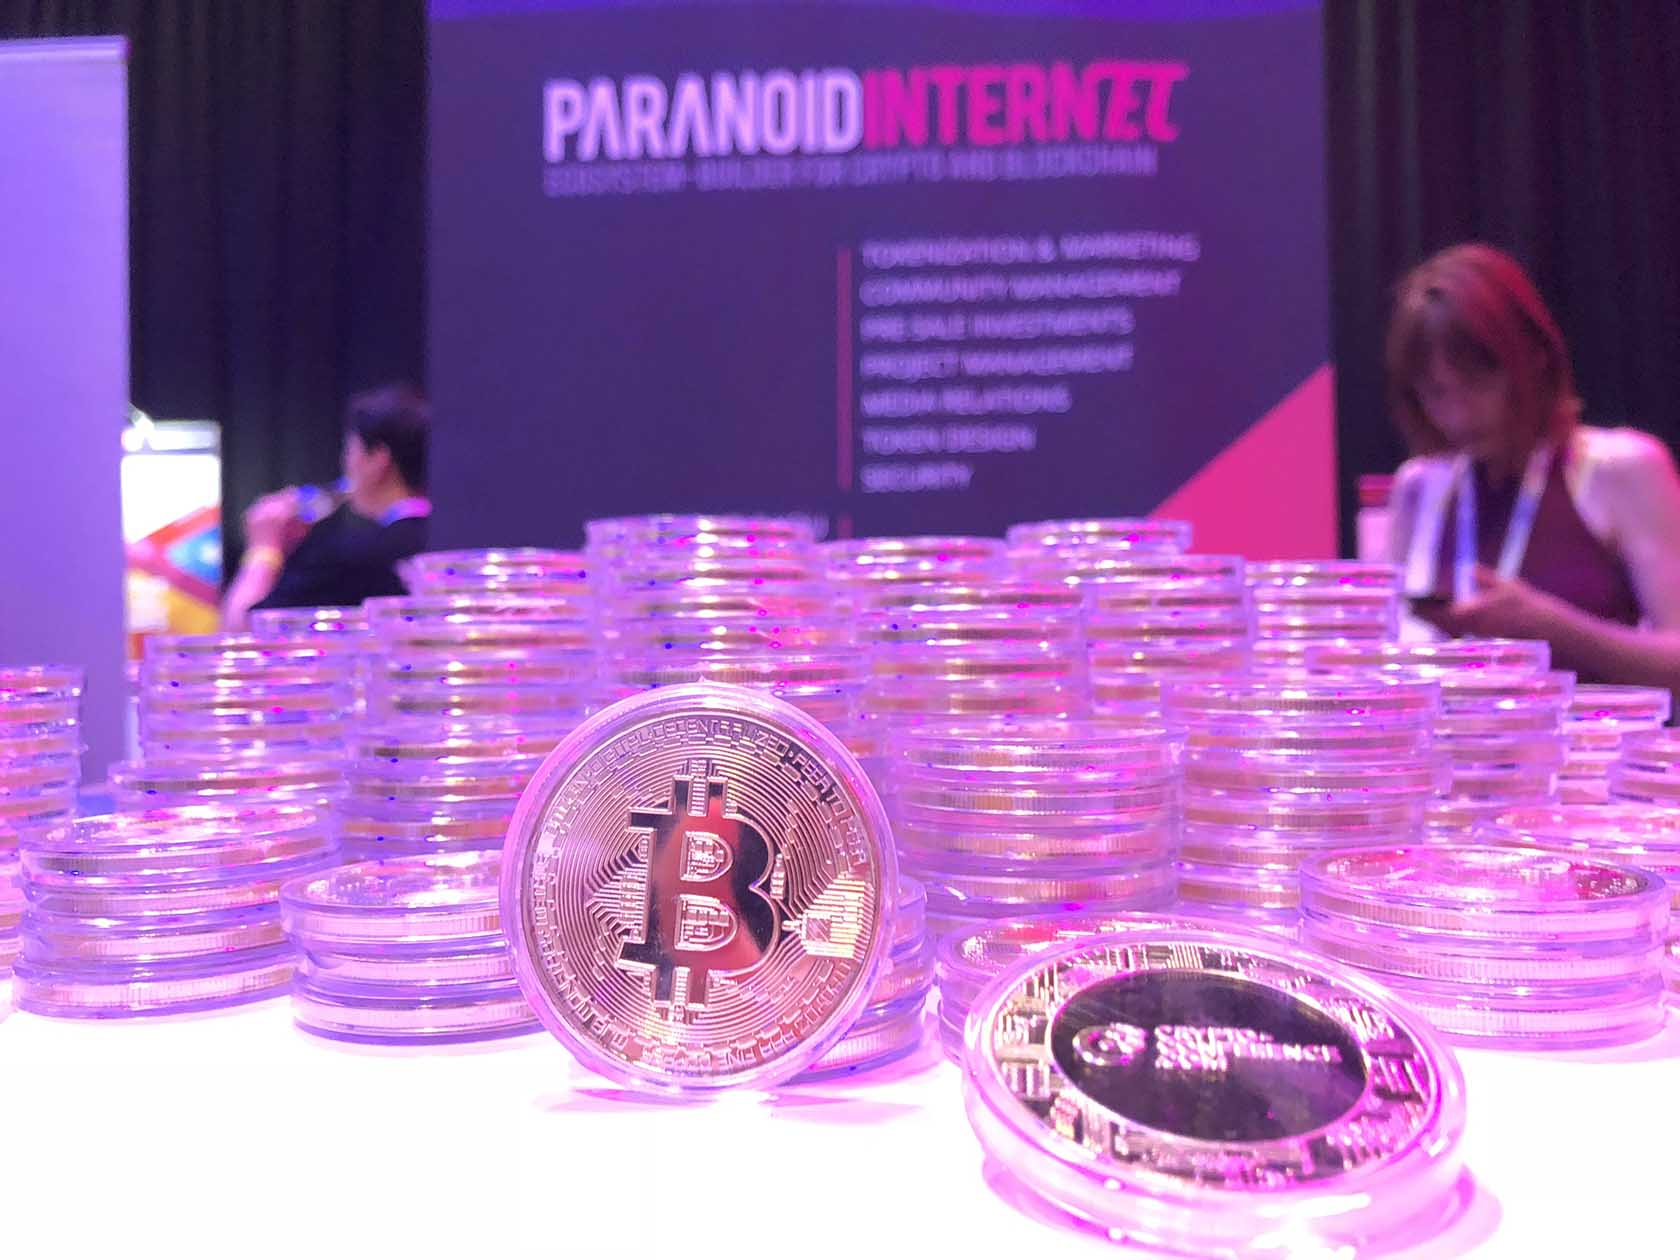 Paranoid Internet Rocks Blockshow Europe 2018 crypto cryptocurrency conference